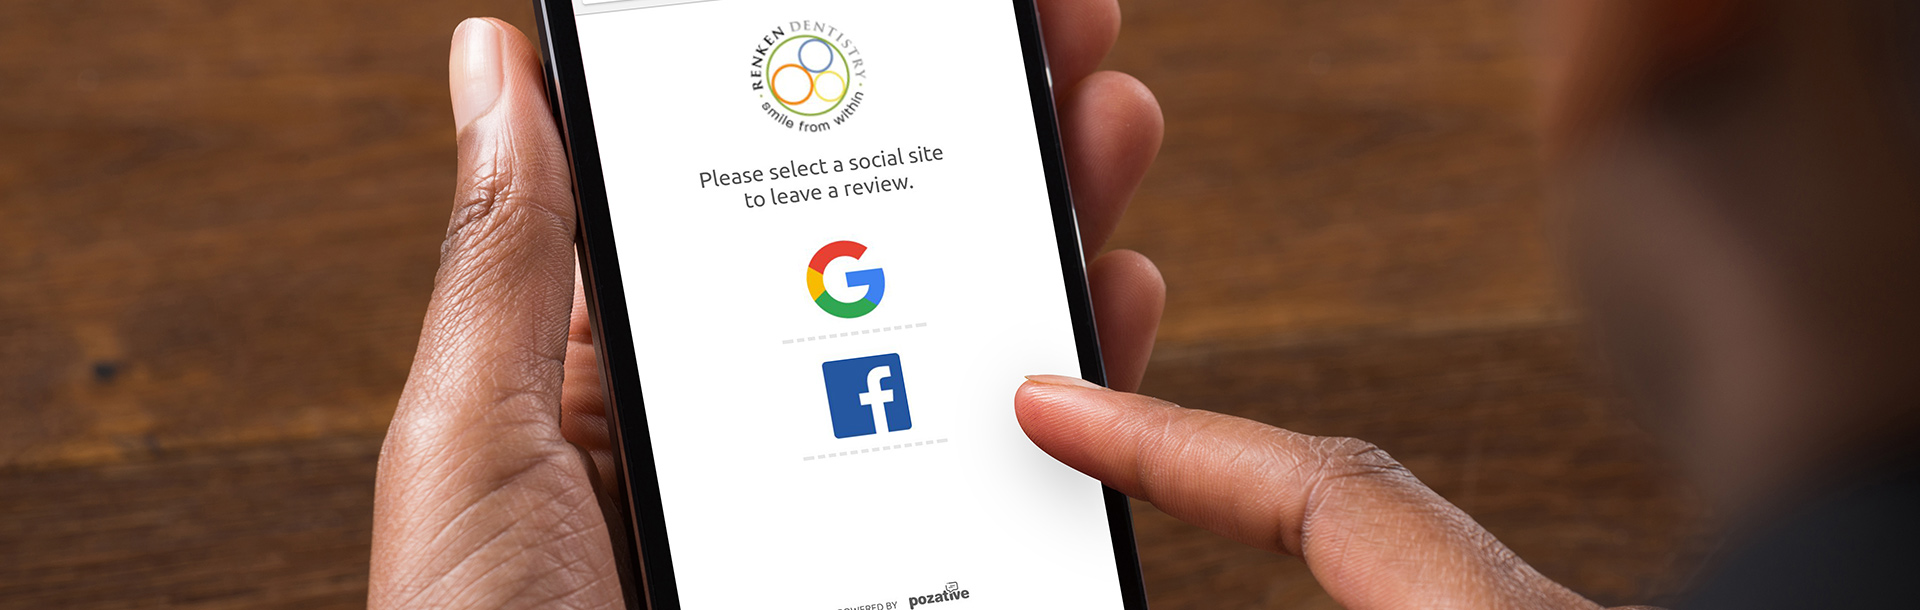 How to Get Great Online Reviews for Your Business